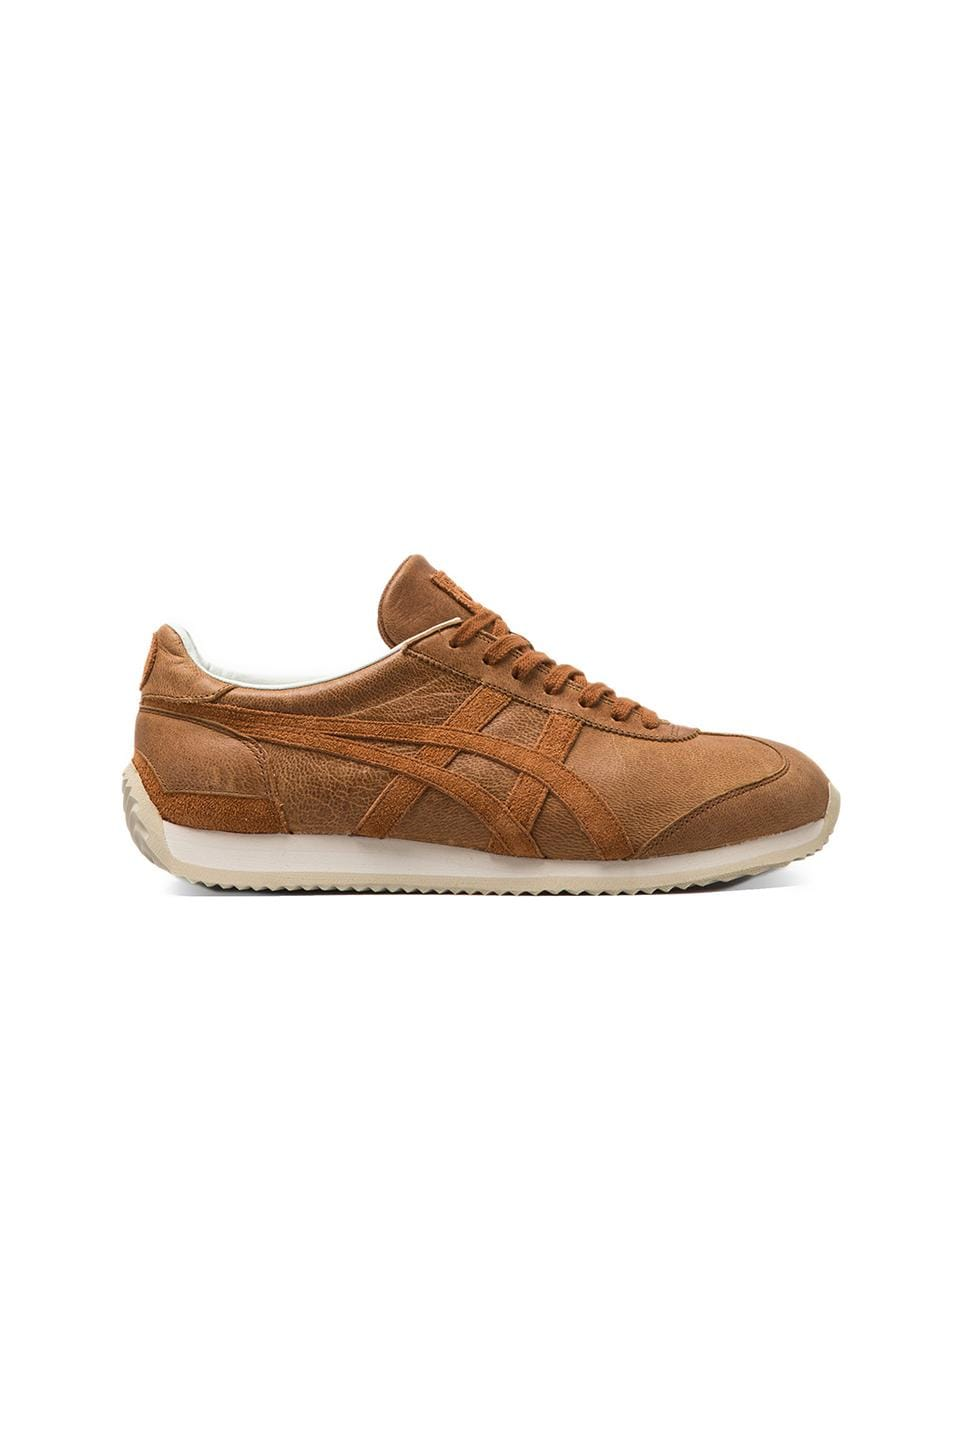 Onitsuka Tiger California 78 Anniversary in Brown/Brown